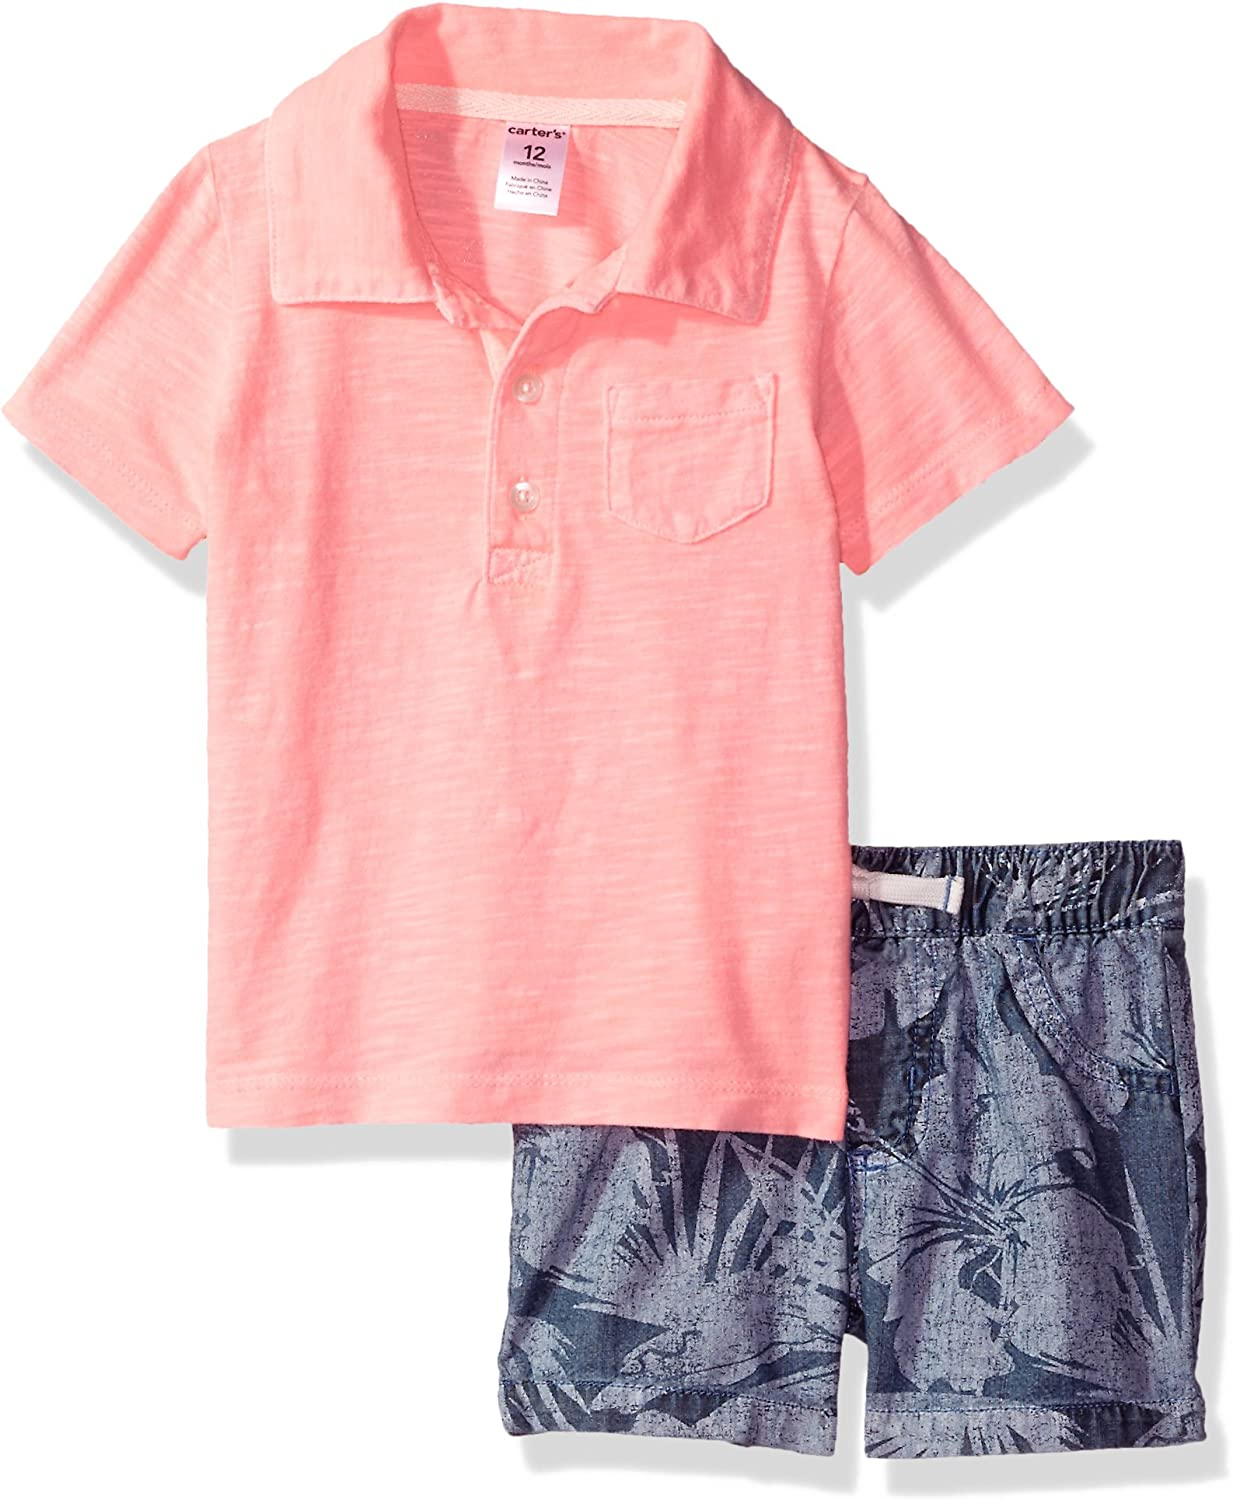 Carters Baby Boys 2 Pc Sets 127g407